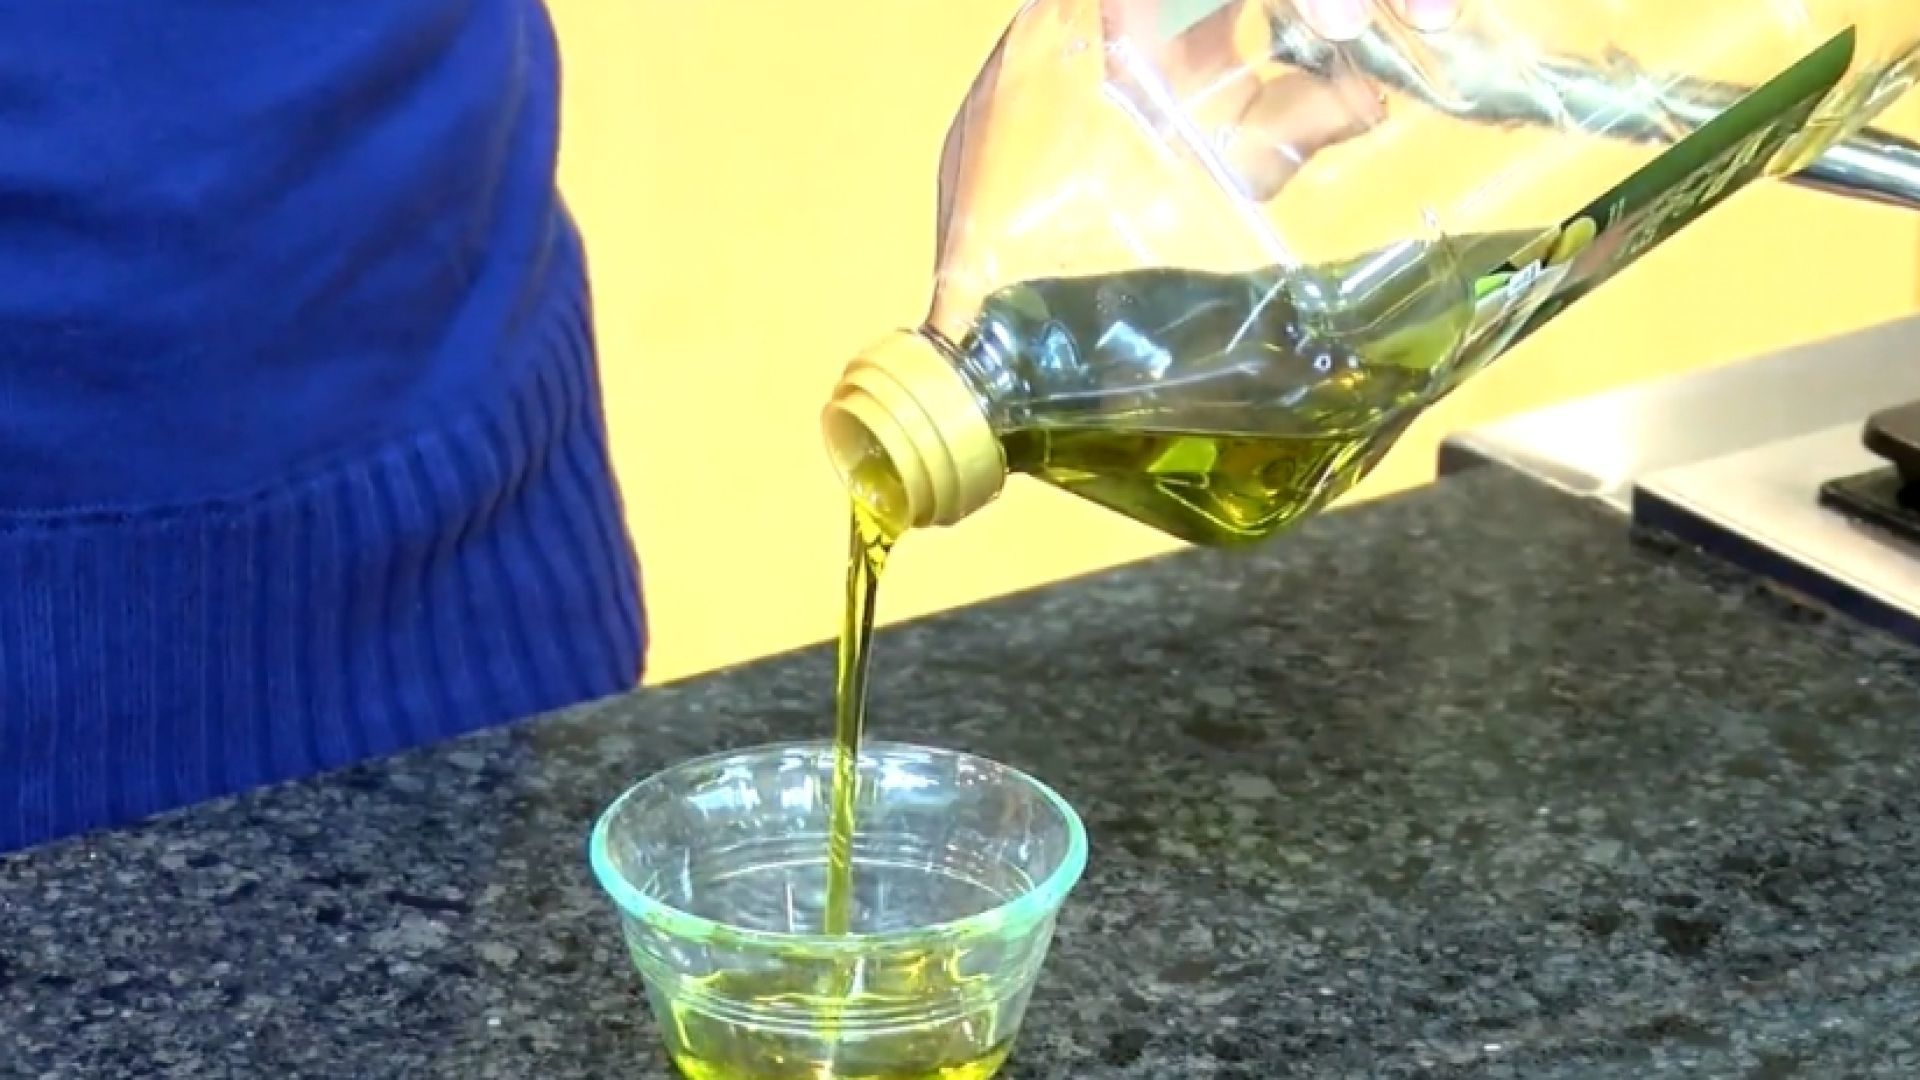 The Healthiest Cooking Oils